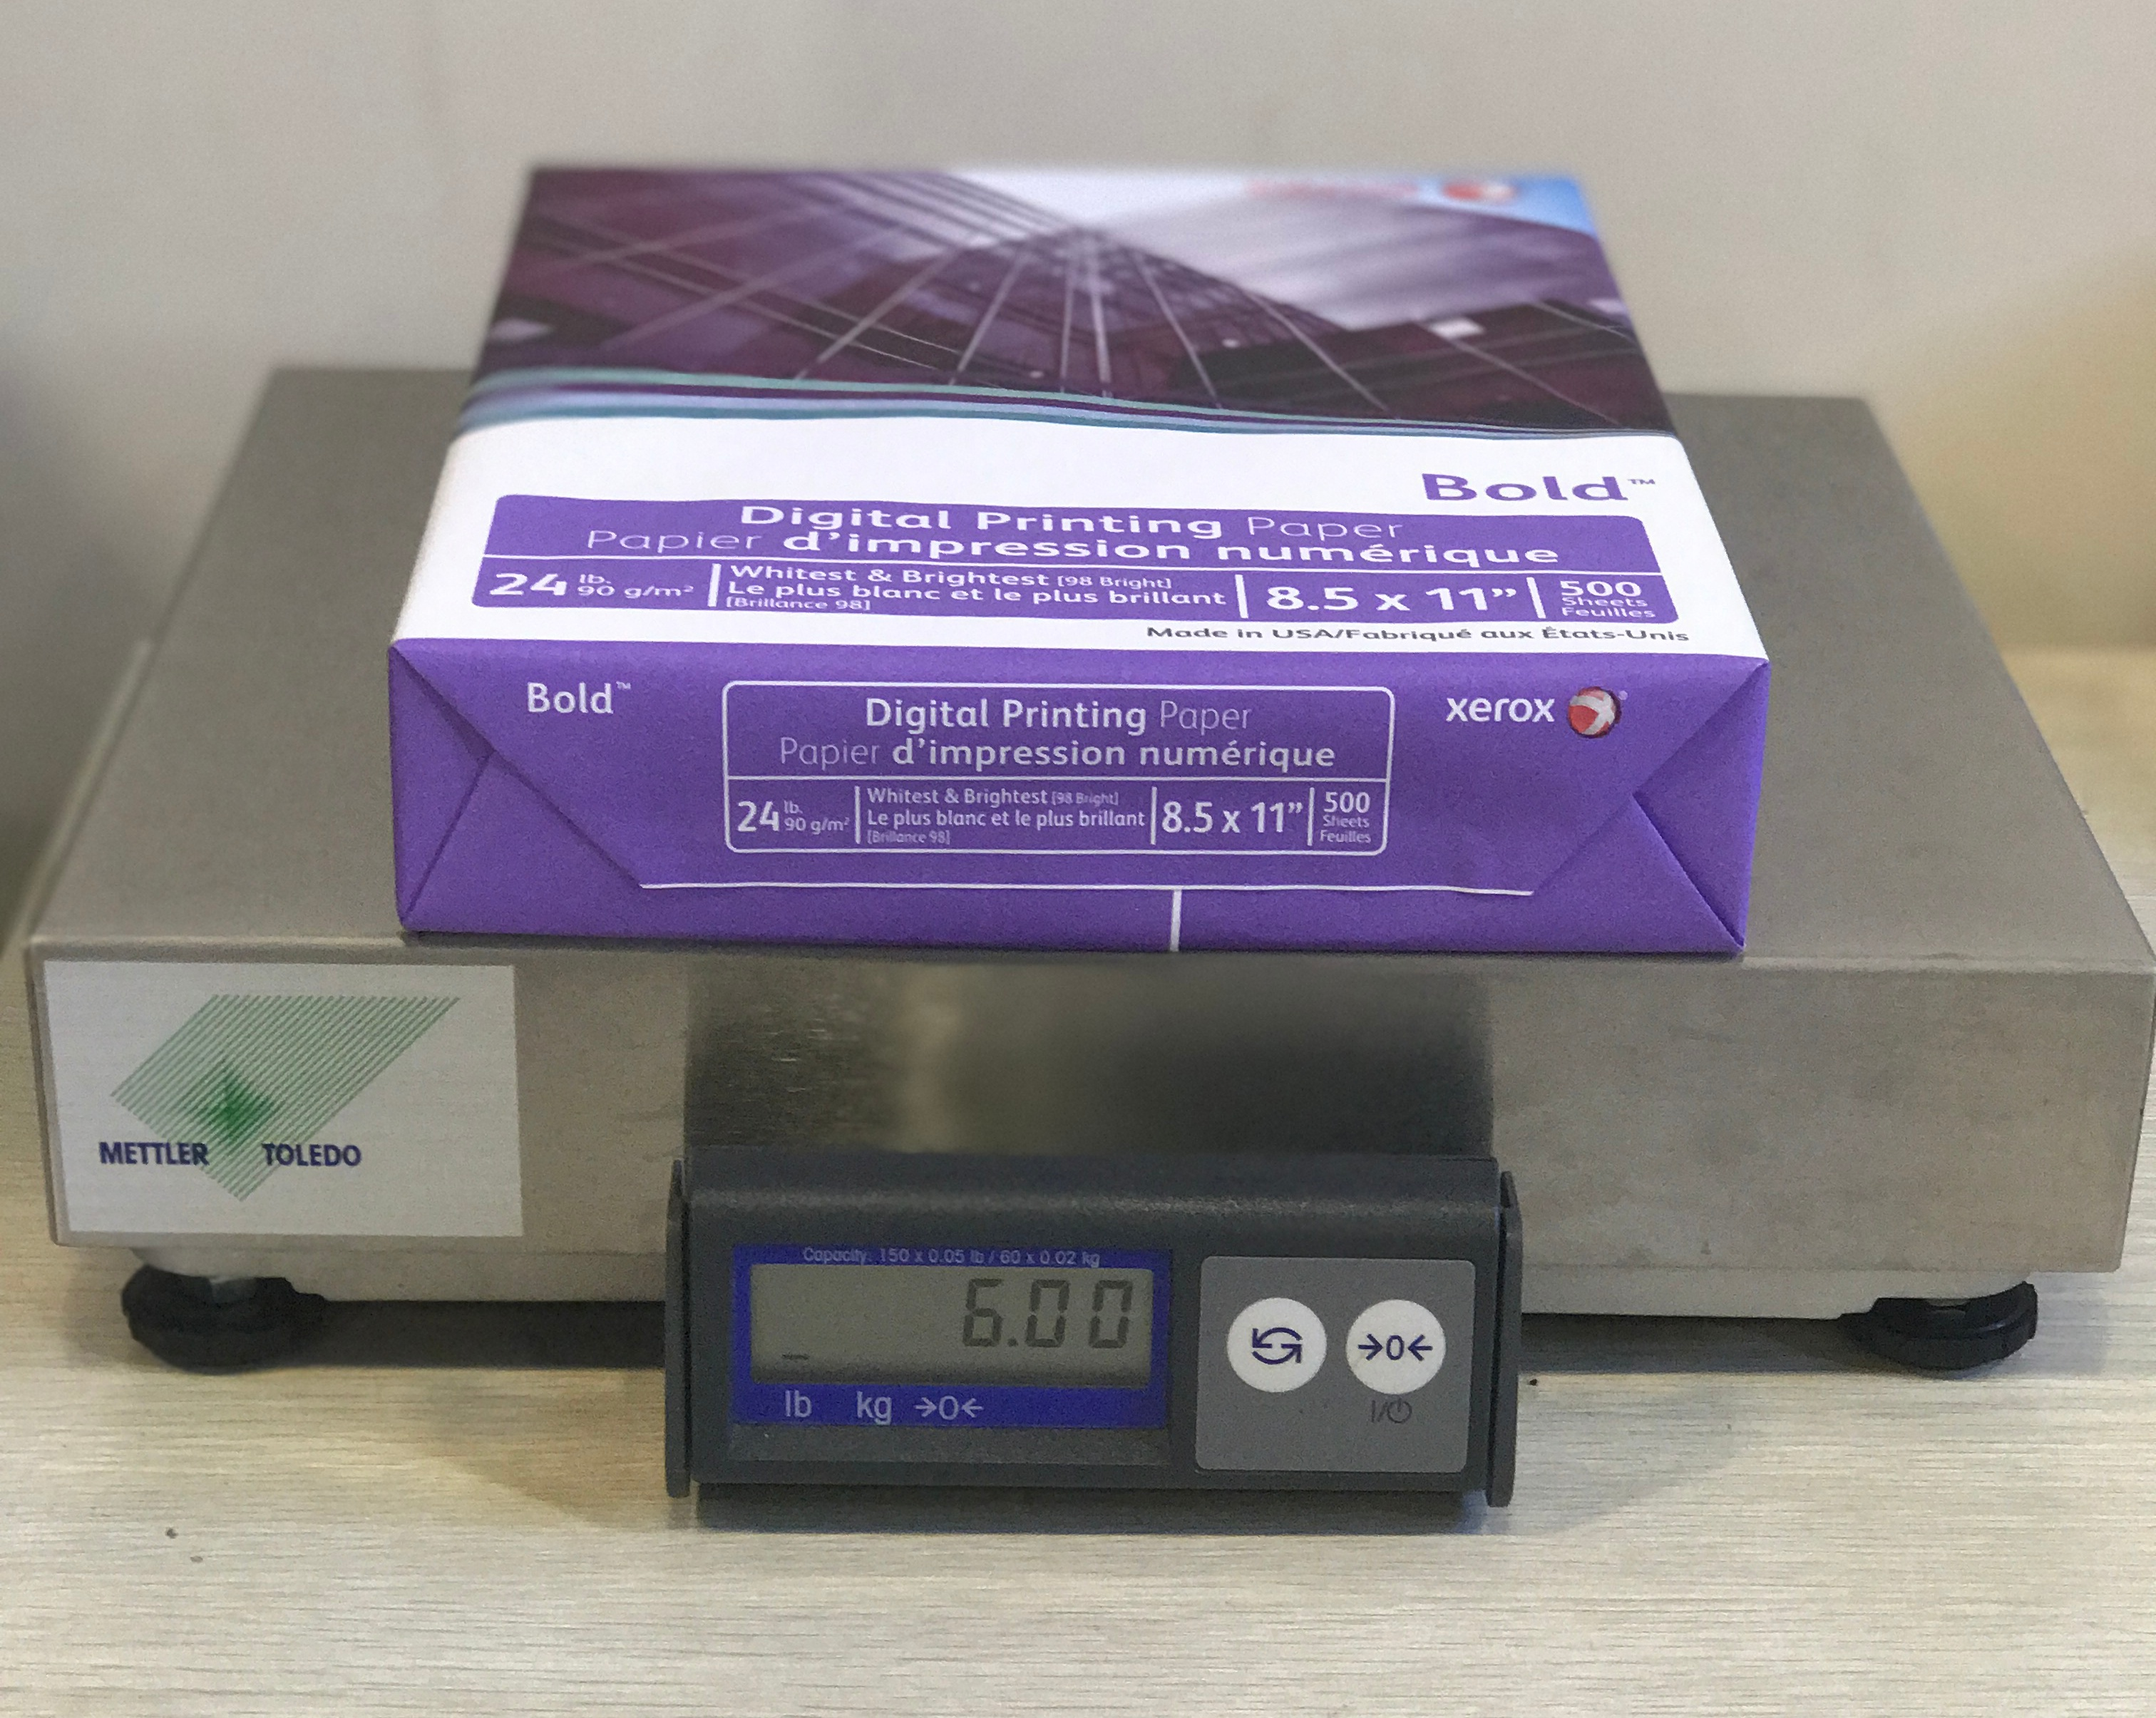 If you've ever experienced the angry wrath of a jammed printer, there's a good chance incorrect paper weight was a factor. Learn more about why paper weight matters.